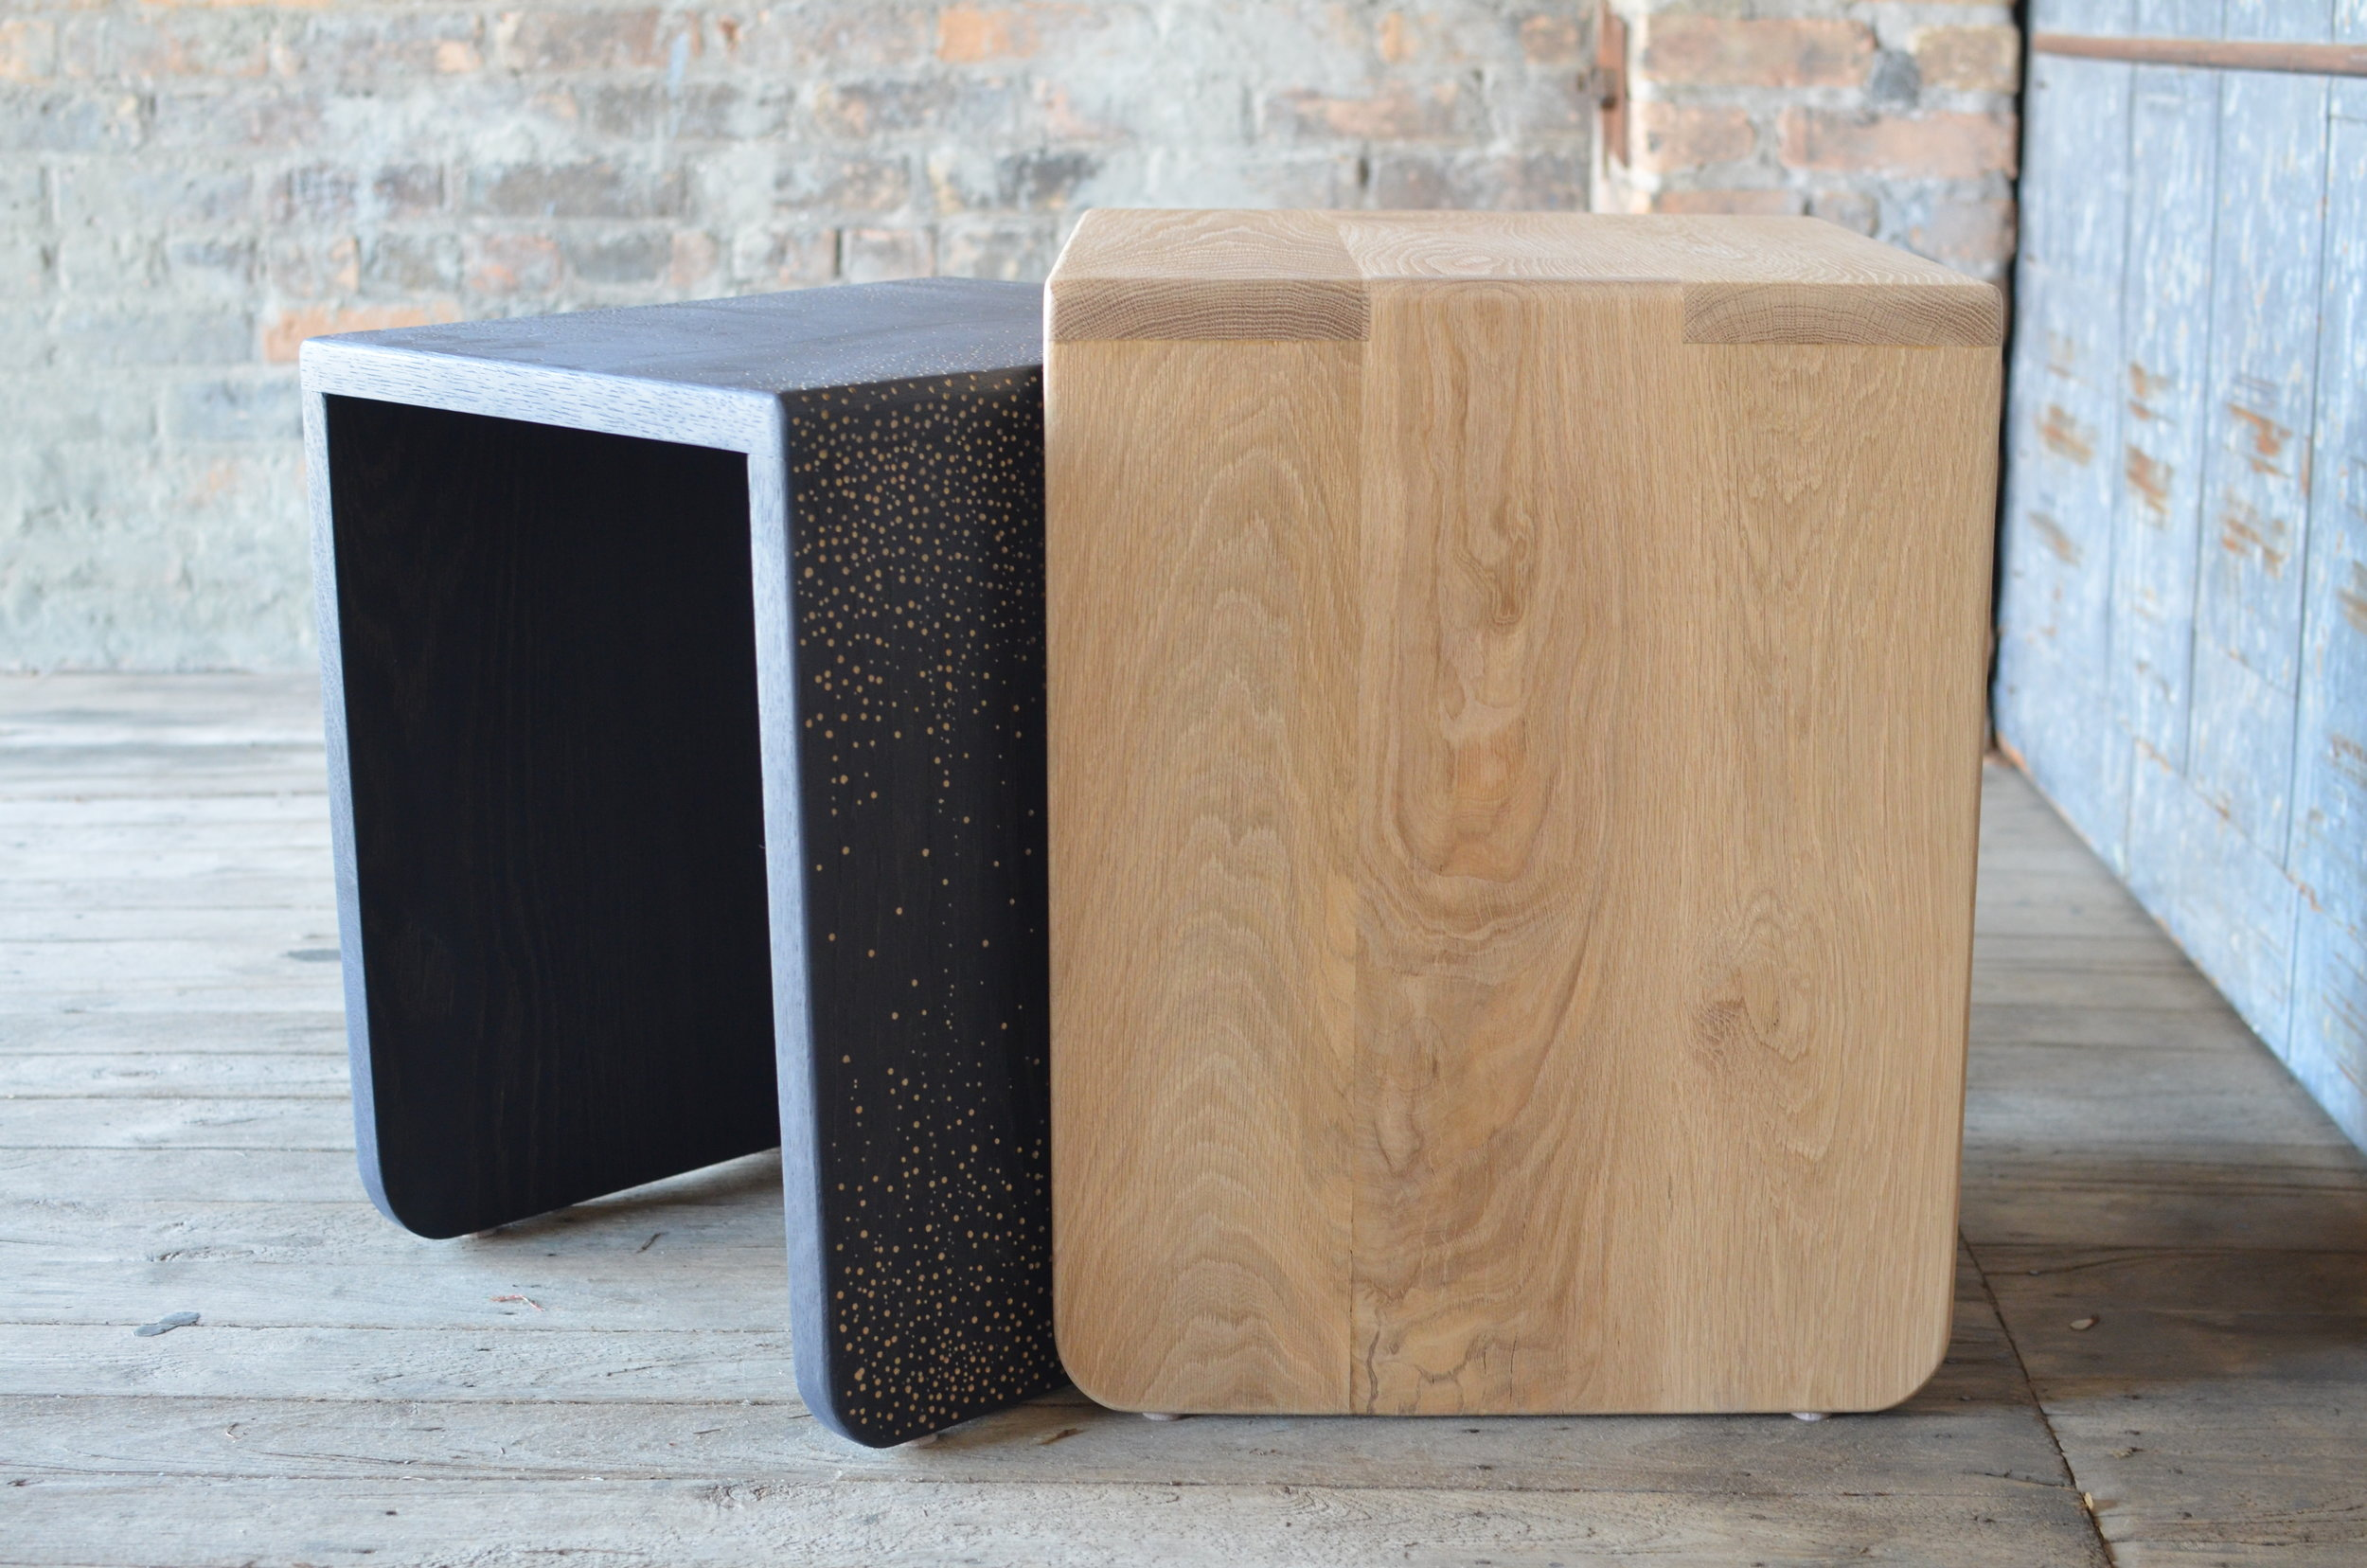 SPECKLE NESTING - Solid white oak nesting tables with a hand carved speckled dot pattern. Each set comes with one natural and one ebonized oak table. The ebonized table features the hand-carved texture.Contact us for price and lead time.